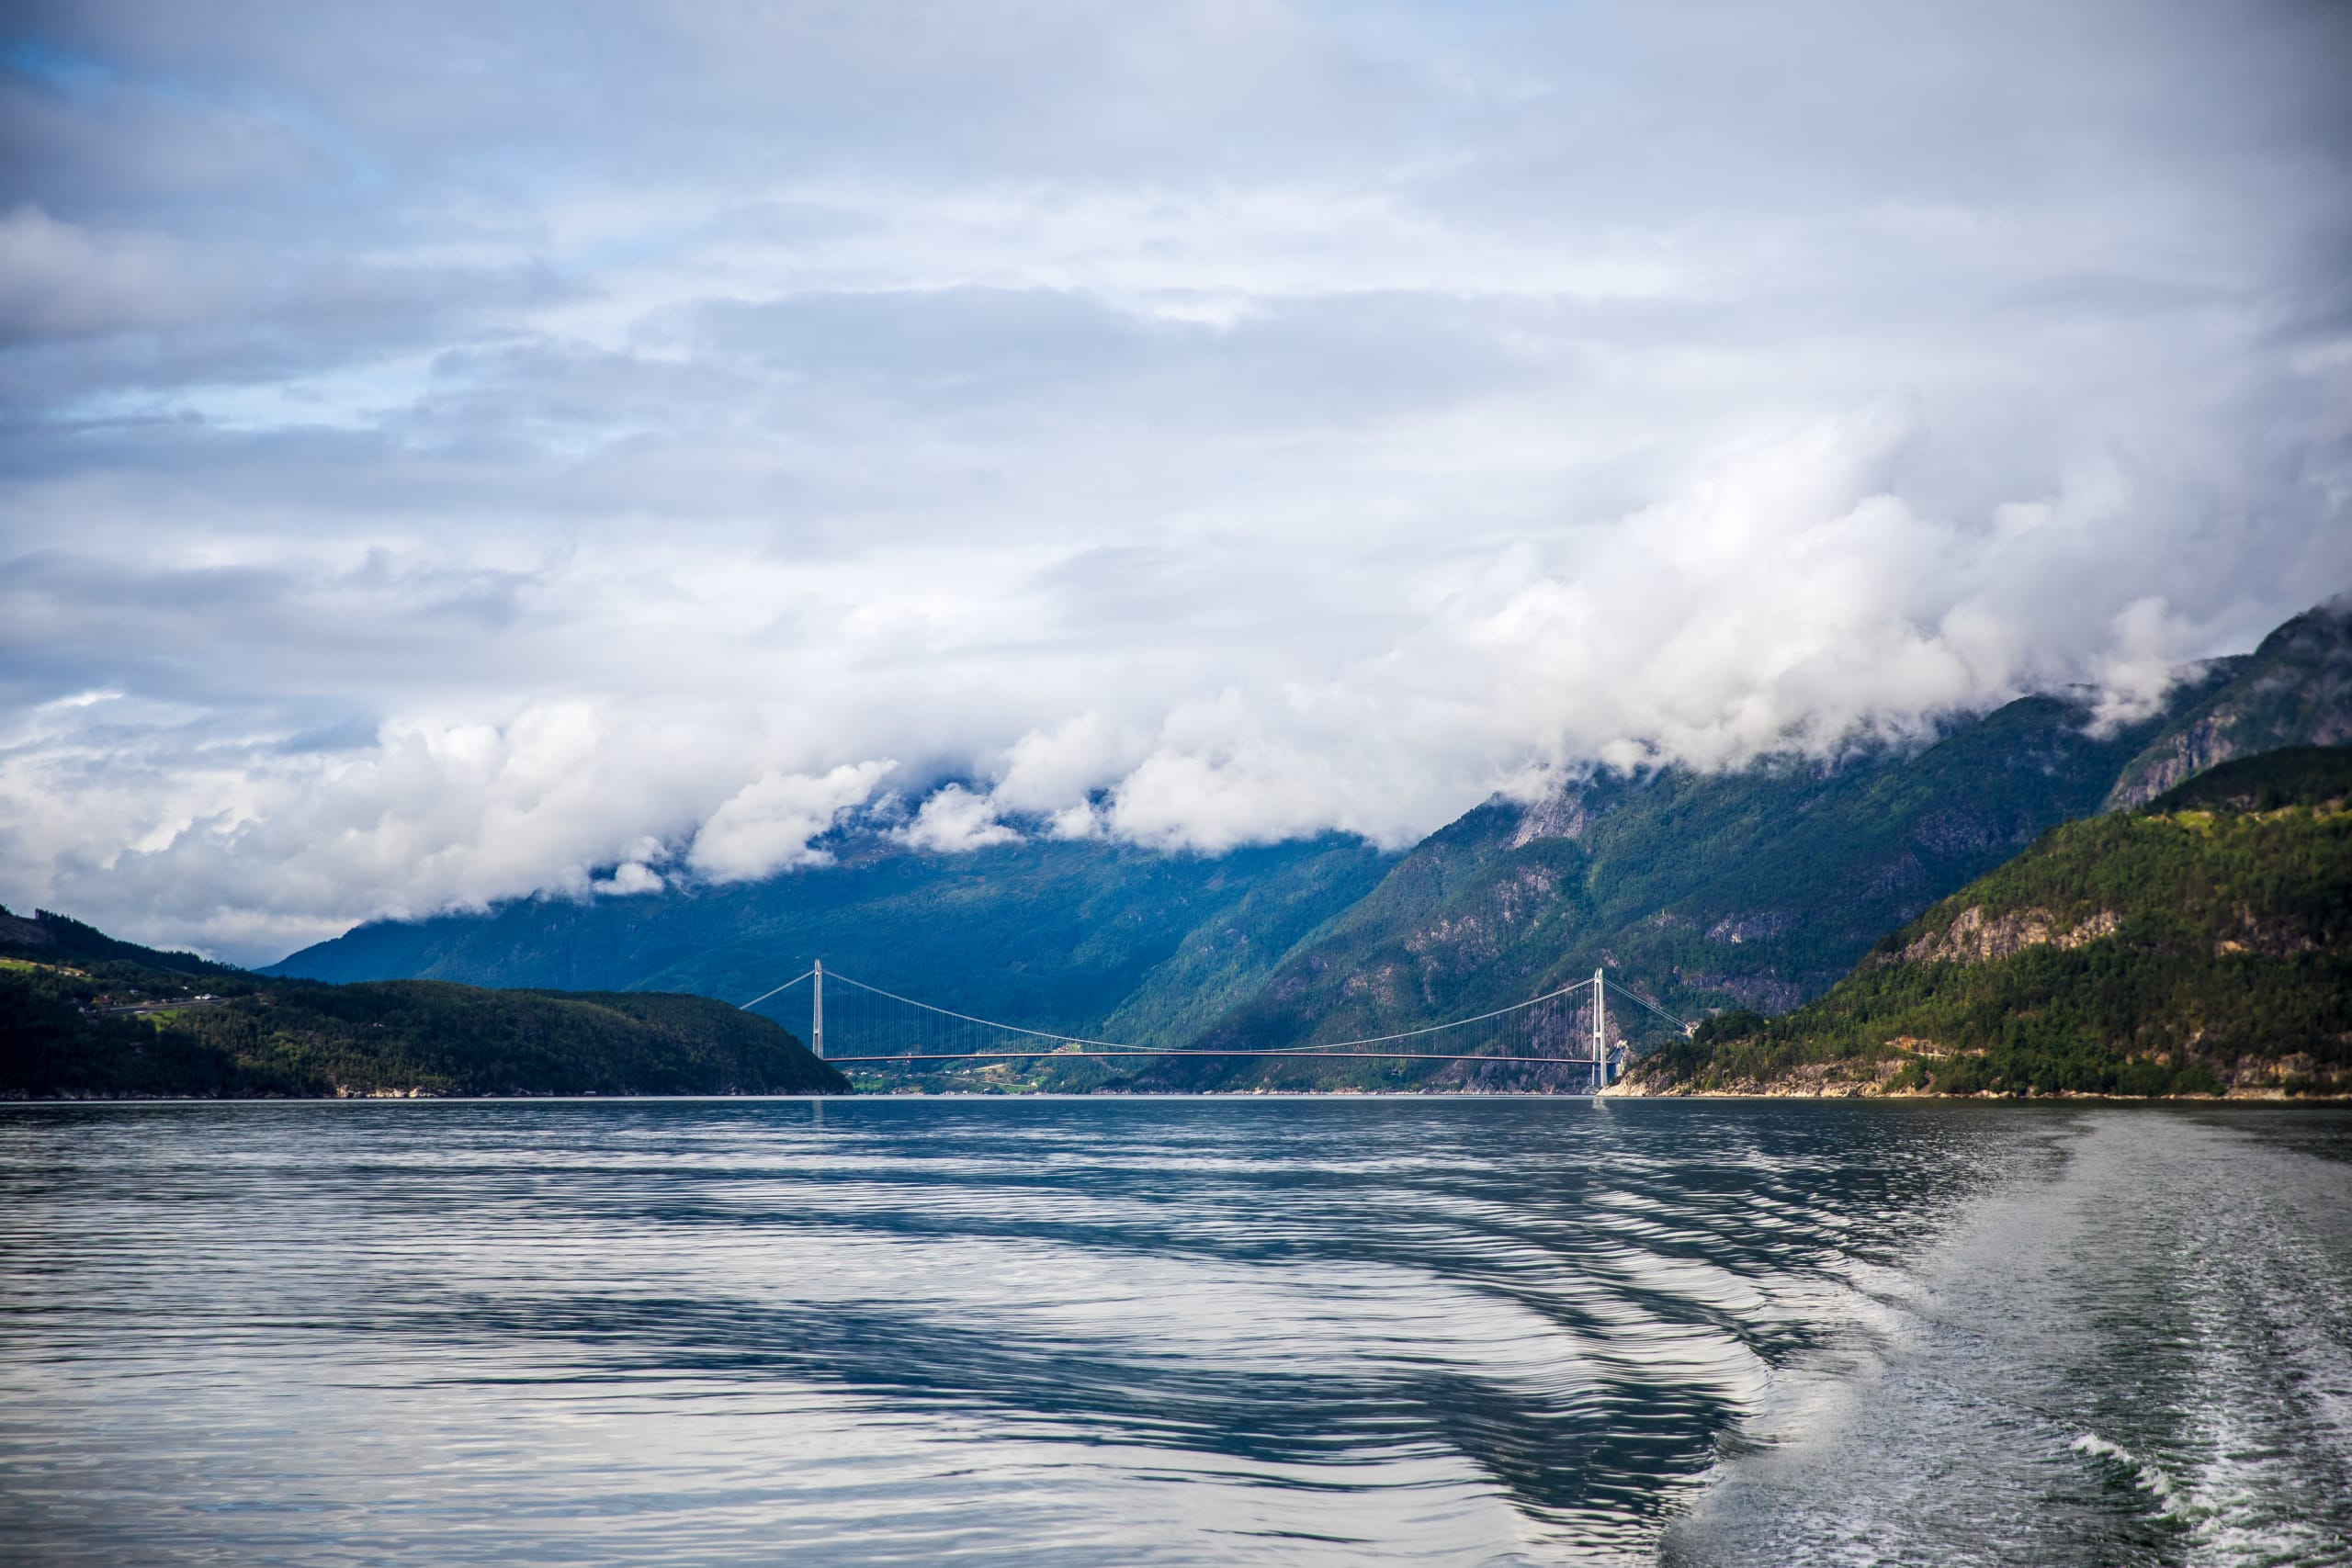 Hardanger bridge seen from the Hardangerfjord